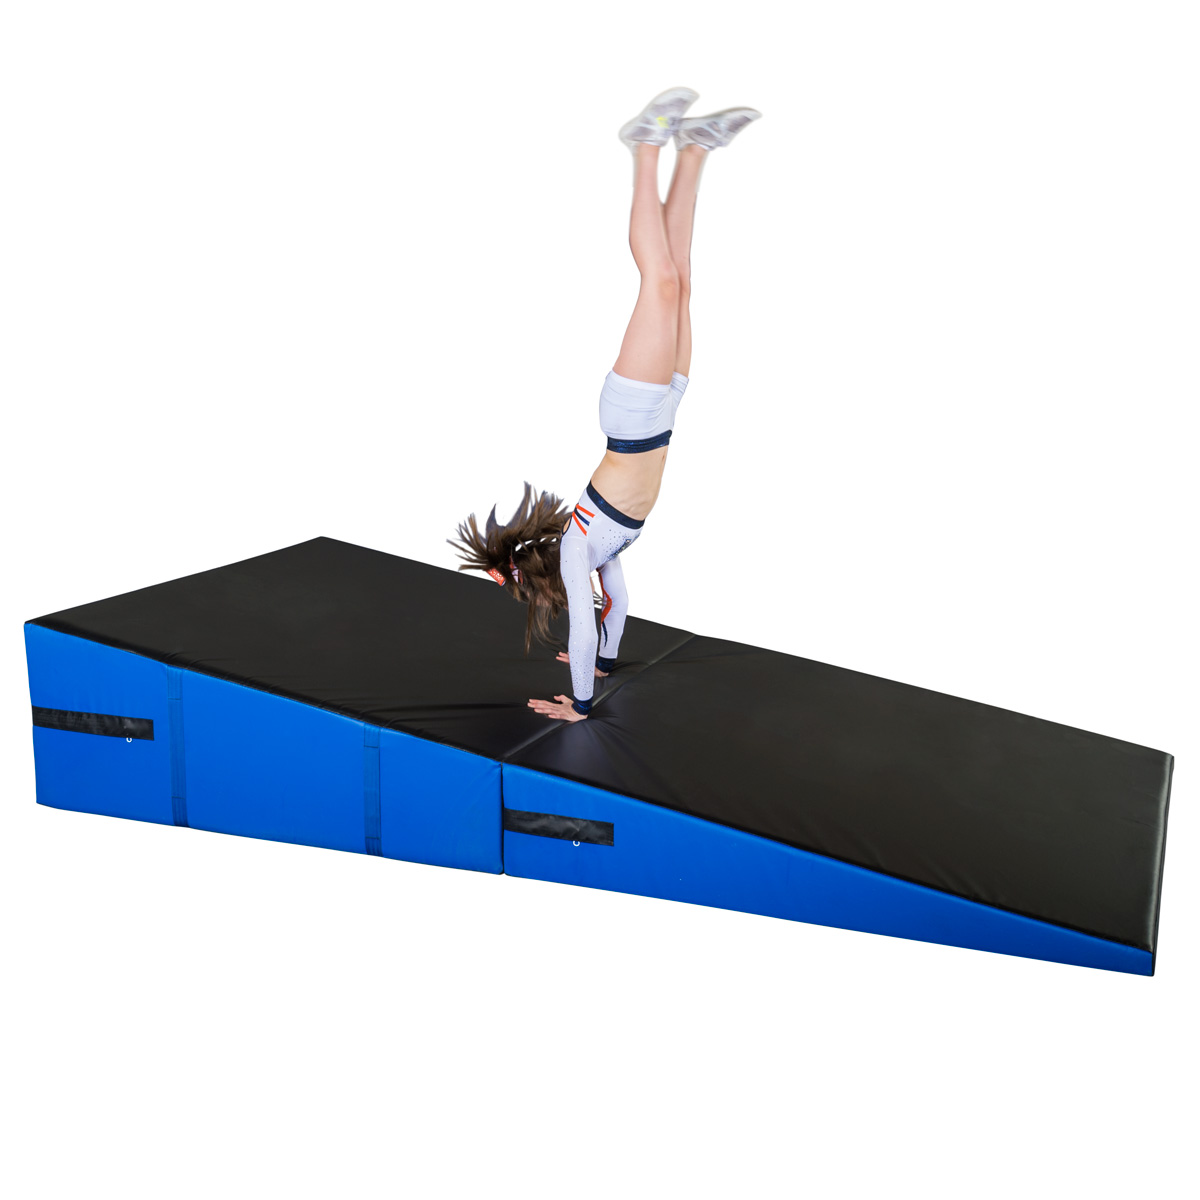 cheerleader doing a front round-off on large folding incline mat from mancino - mancino mats - cheese wedge mats